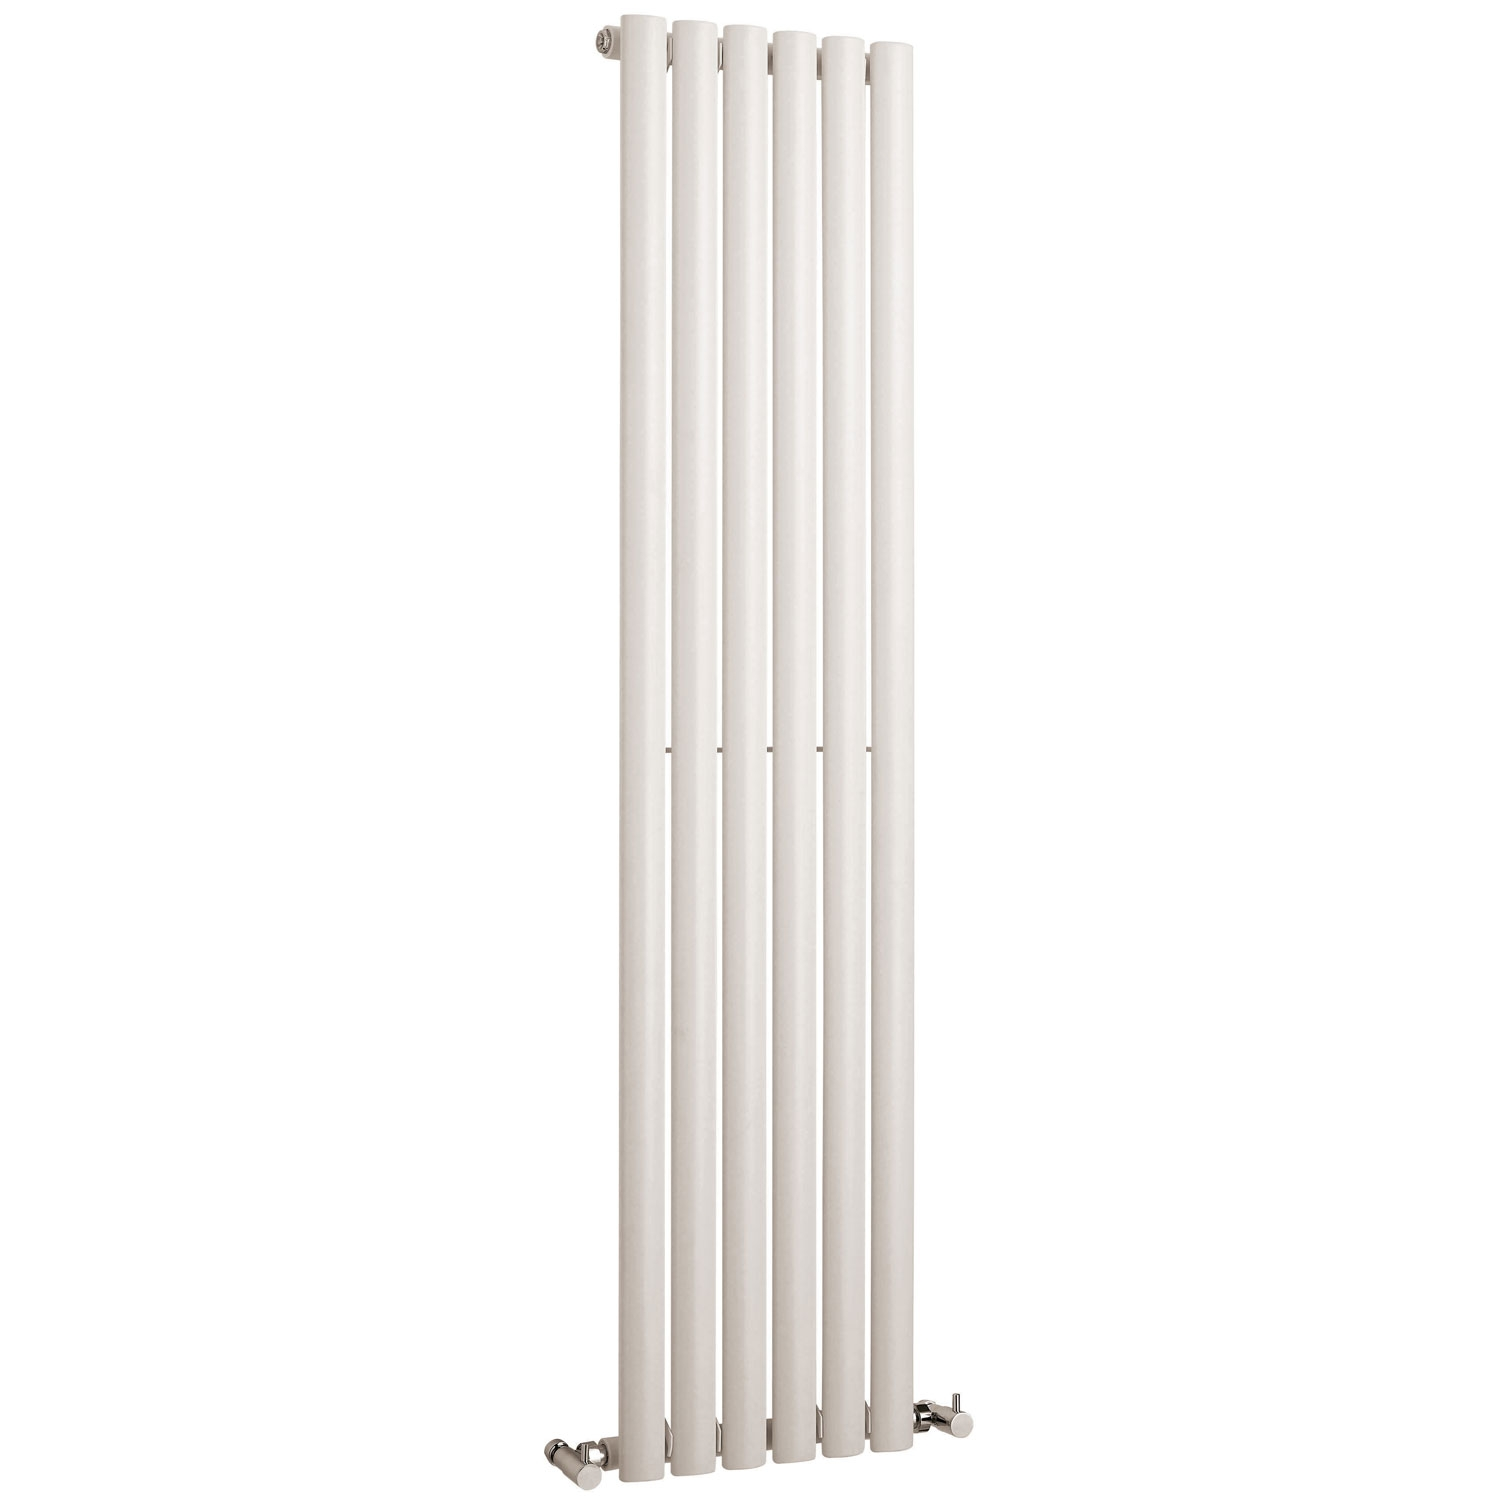 Hudson Reed Revive Single Designer Vertical Radiator 1500mm H x 354mm W White